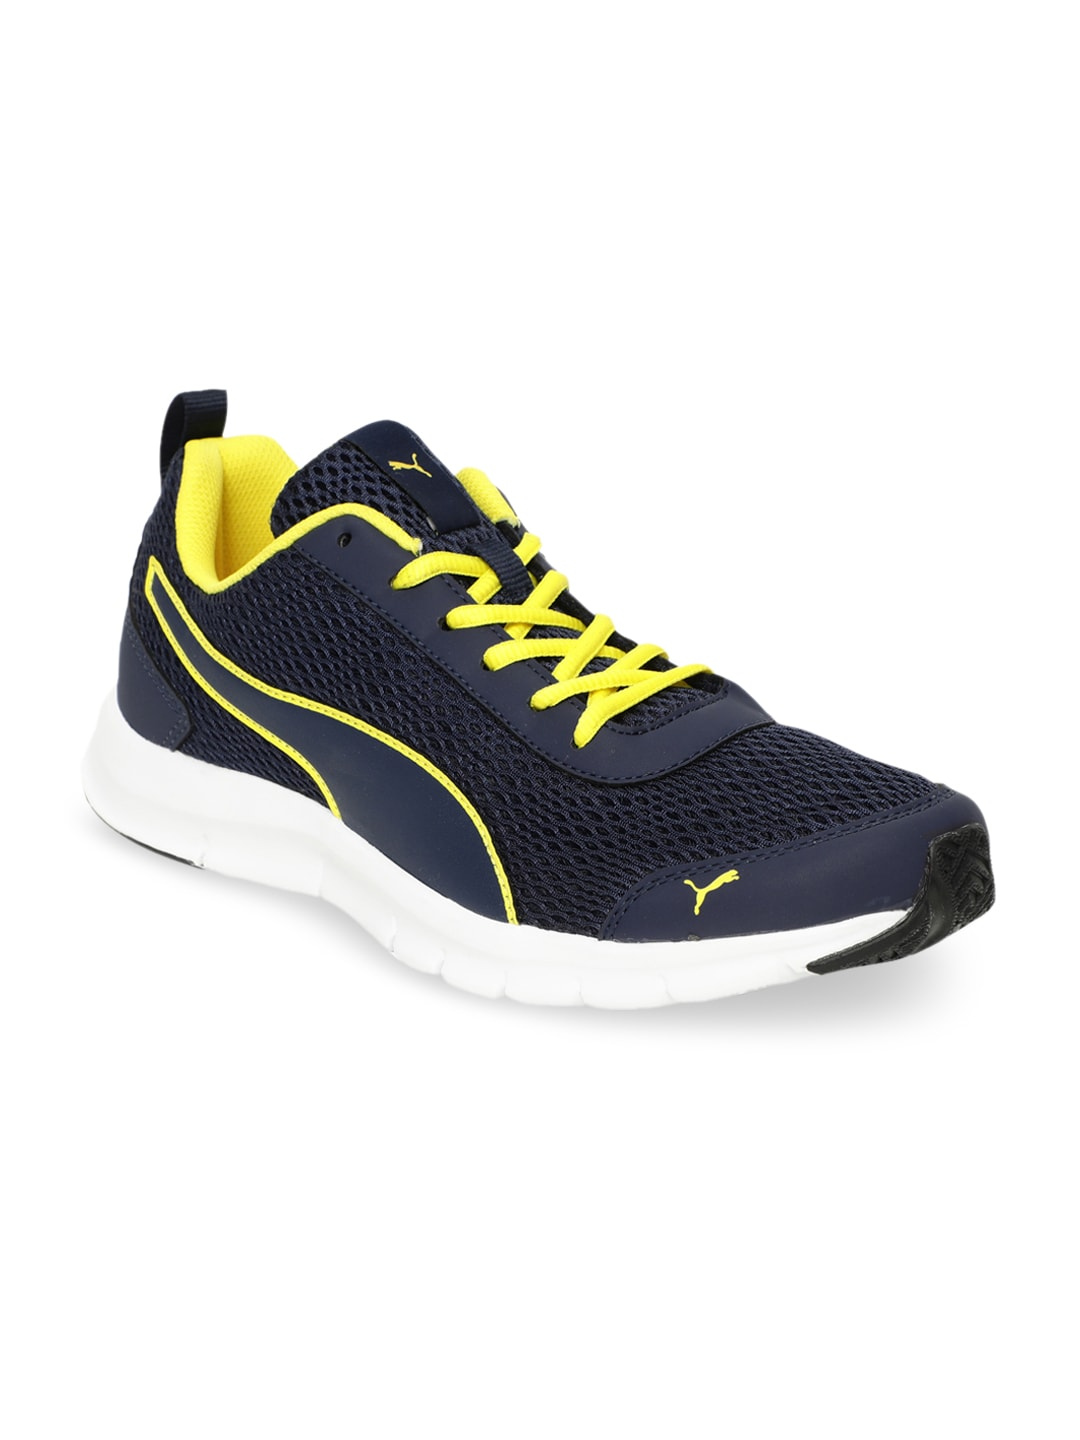 newest 387b4 cd13b Puma Shoes - Buy Puma Shoes for Men   Women Online in India